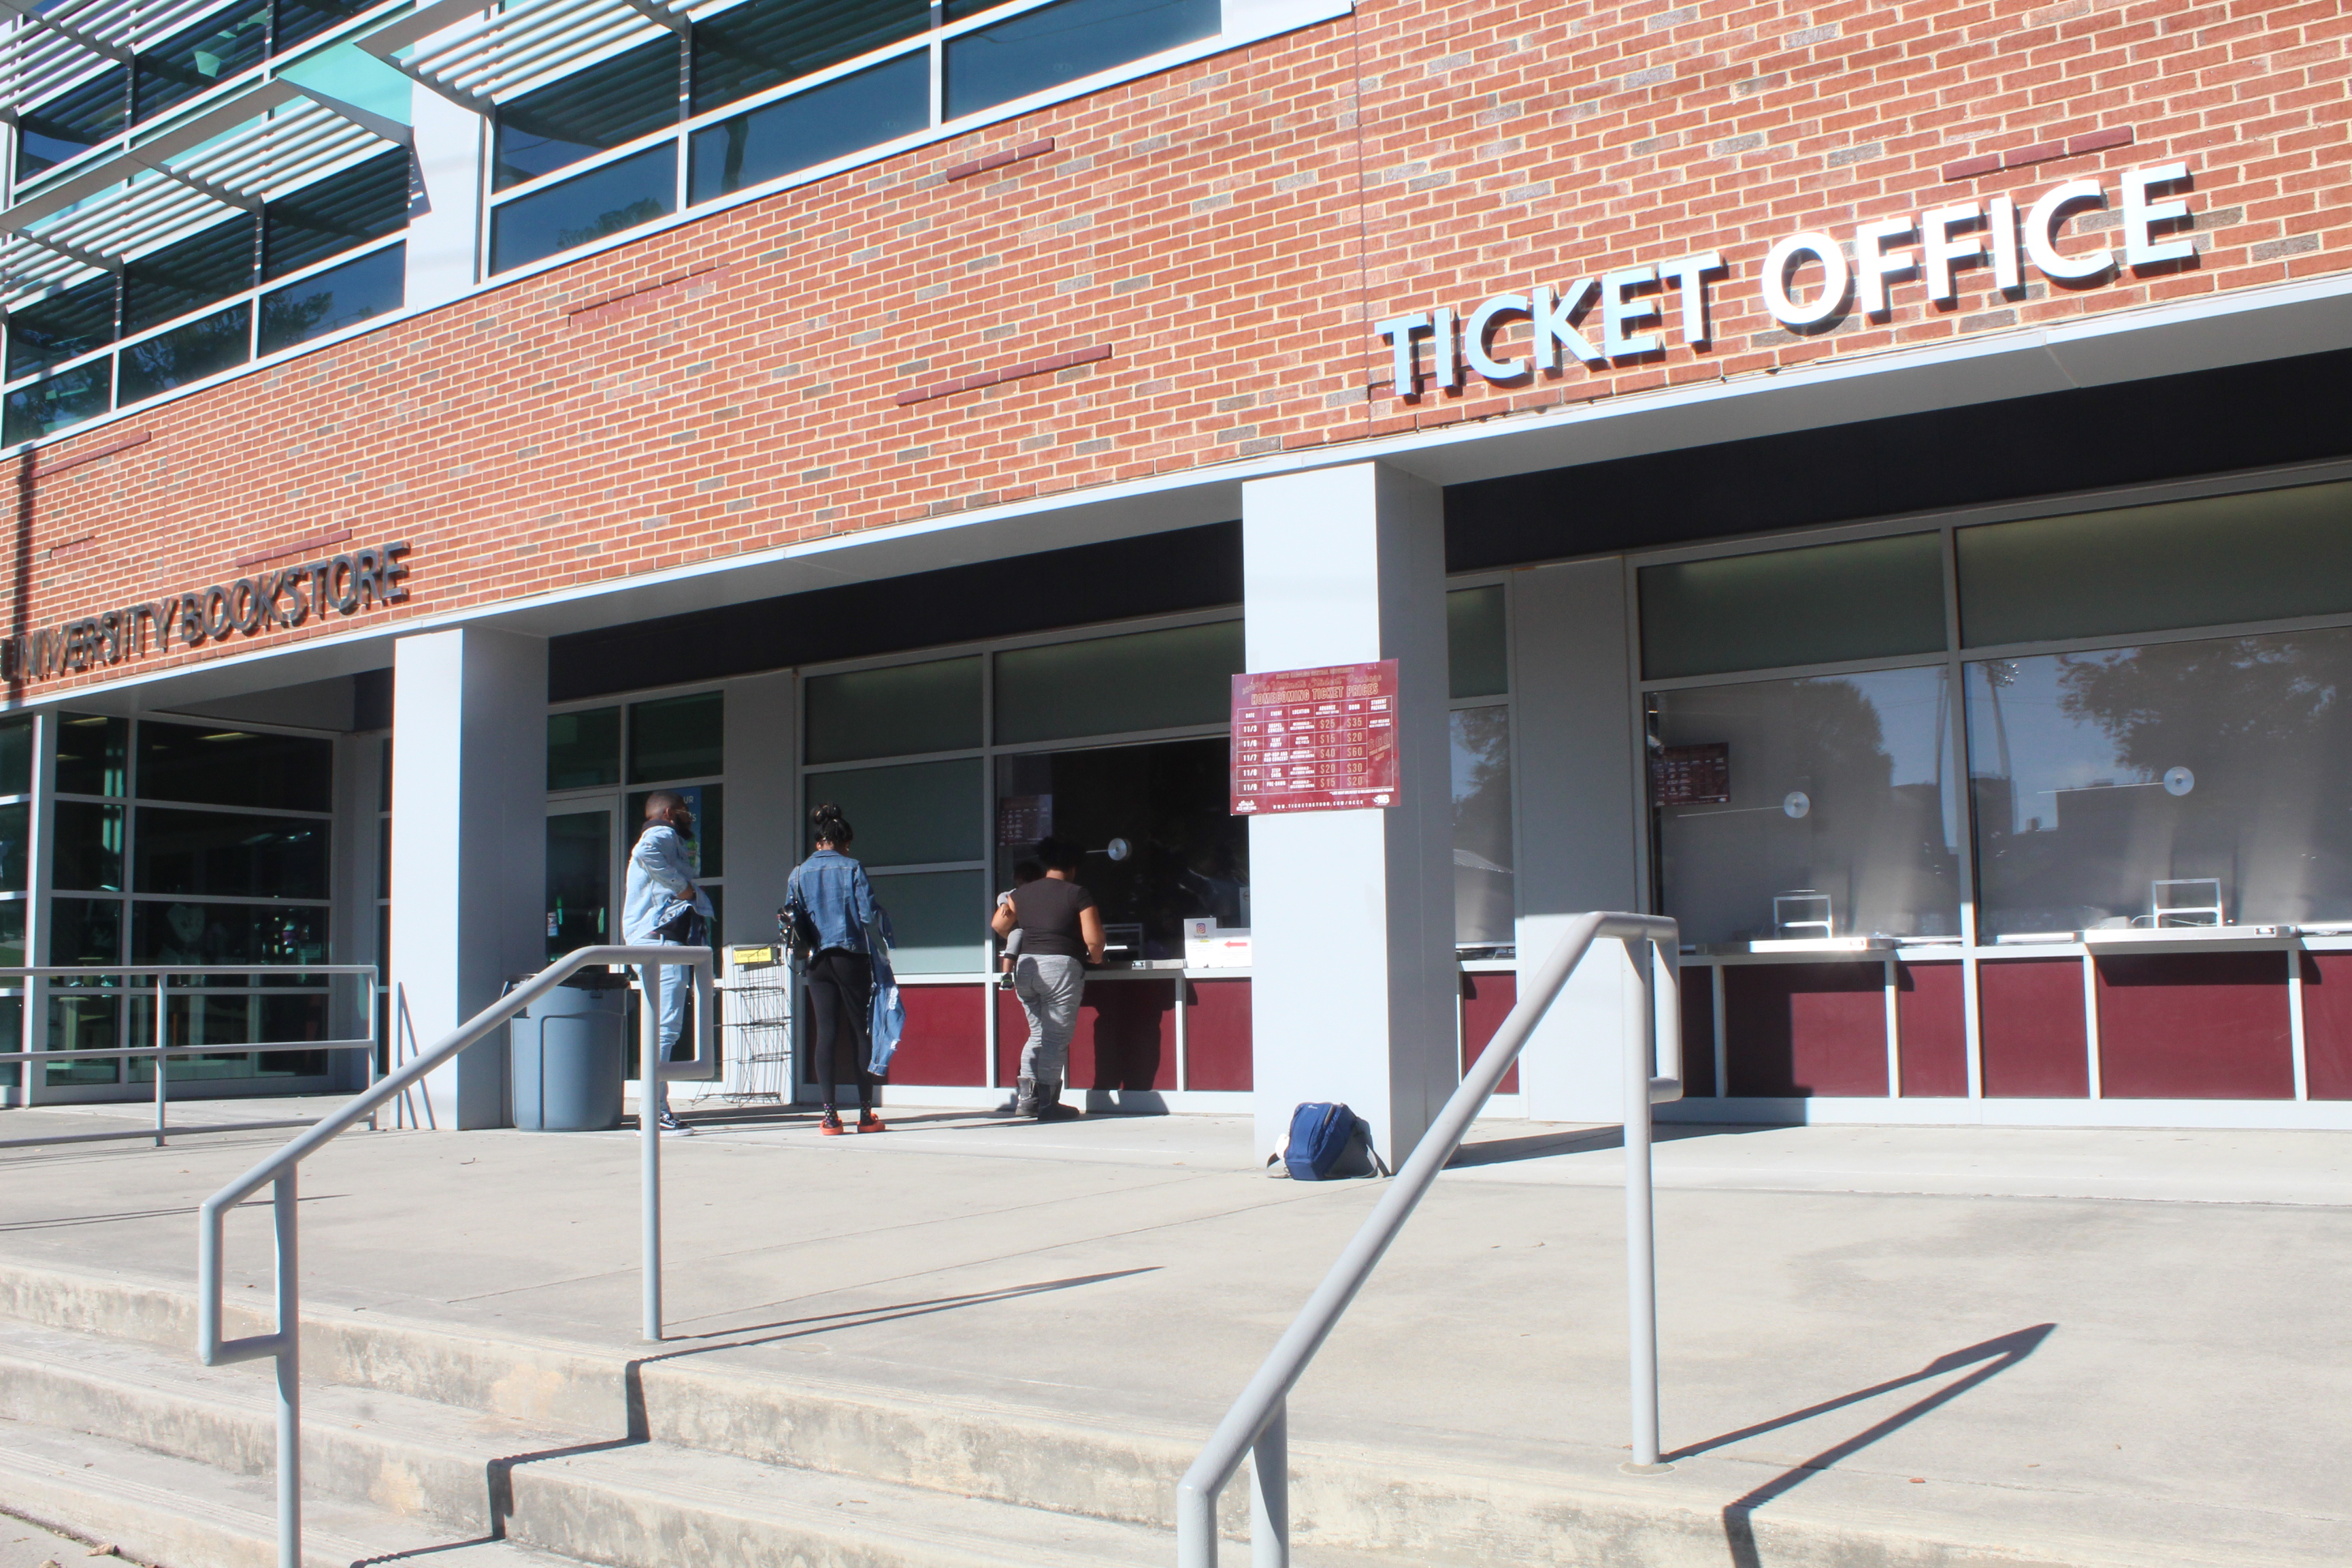 ticket-office-pic.jpg?time=1574291400